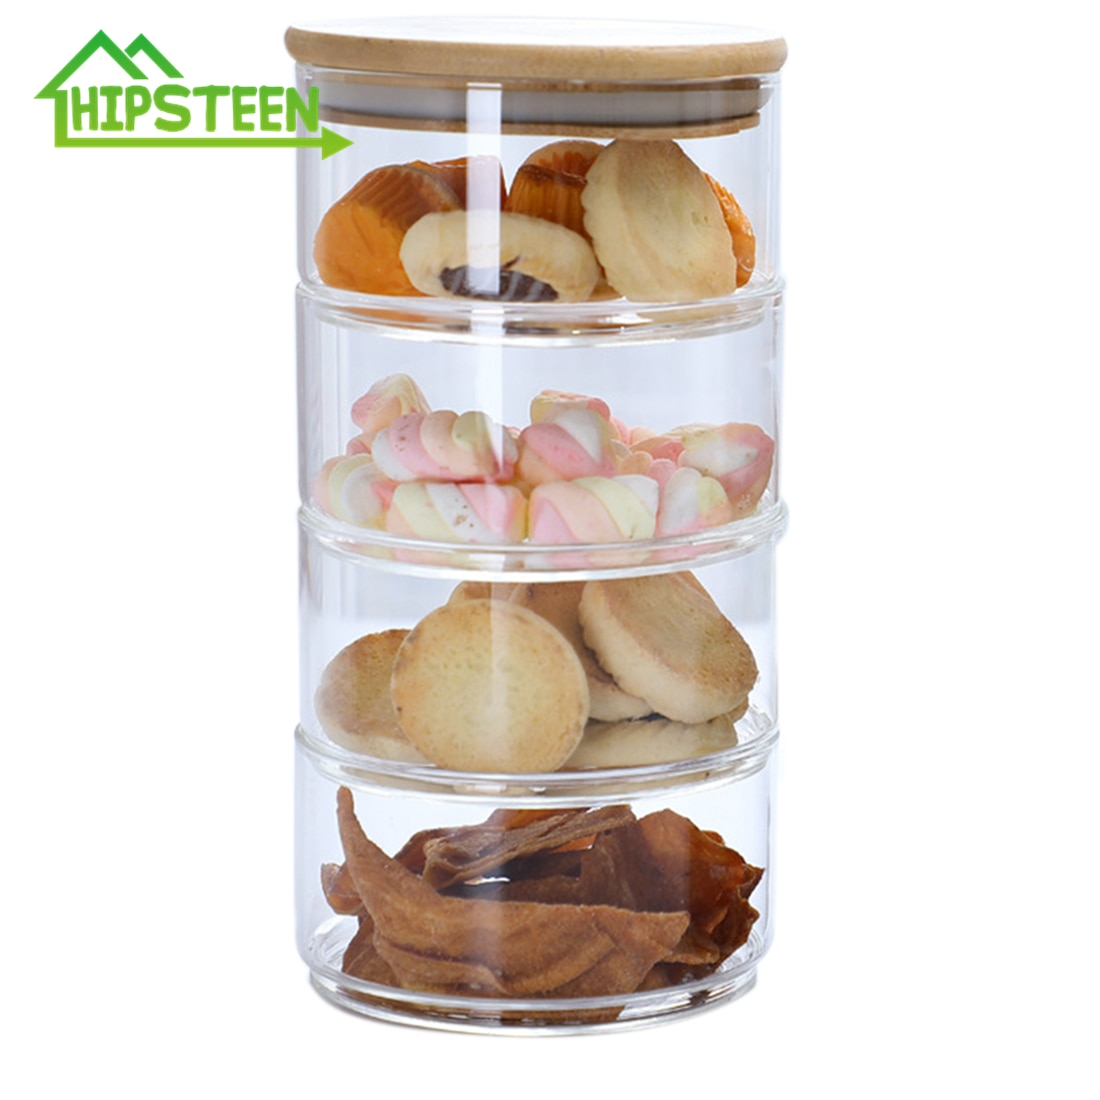 Image result for Cookie Jar Stackable Food Container